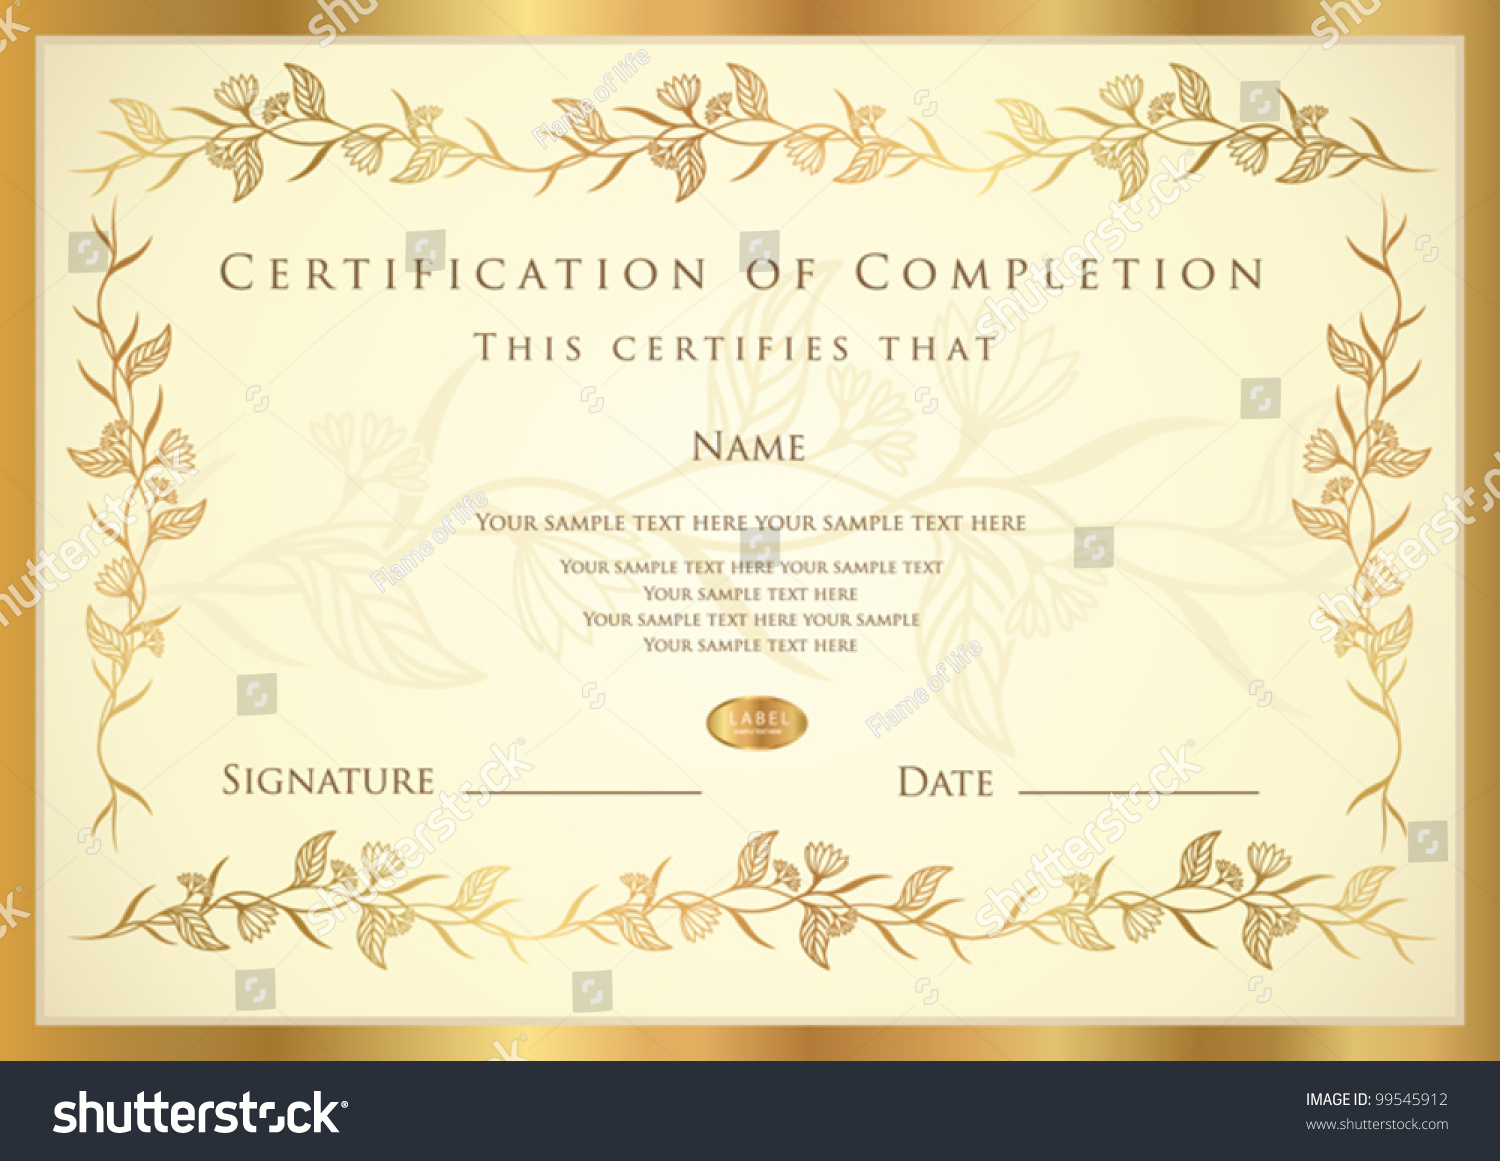 Certificate completion template diploma stock vector 99545912 certificate of completion template diploma yadclub Image collections